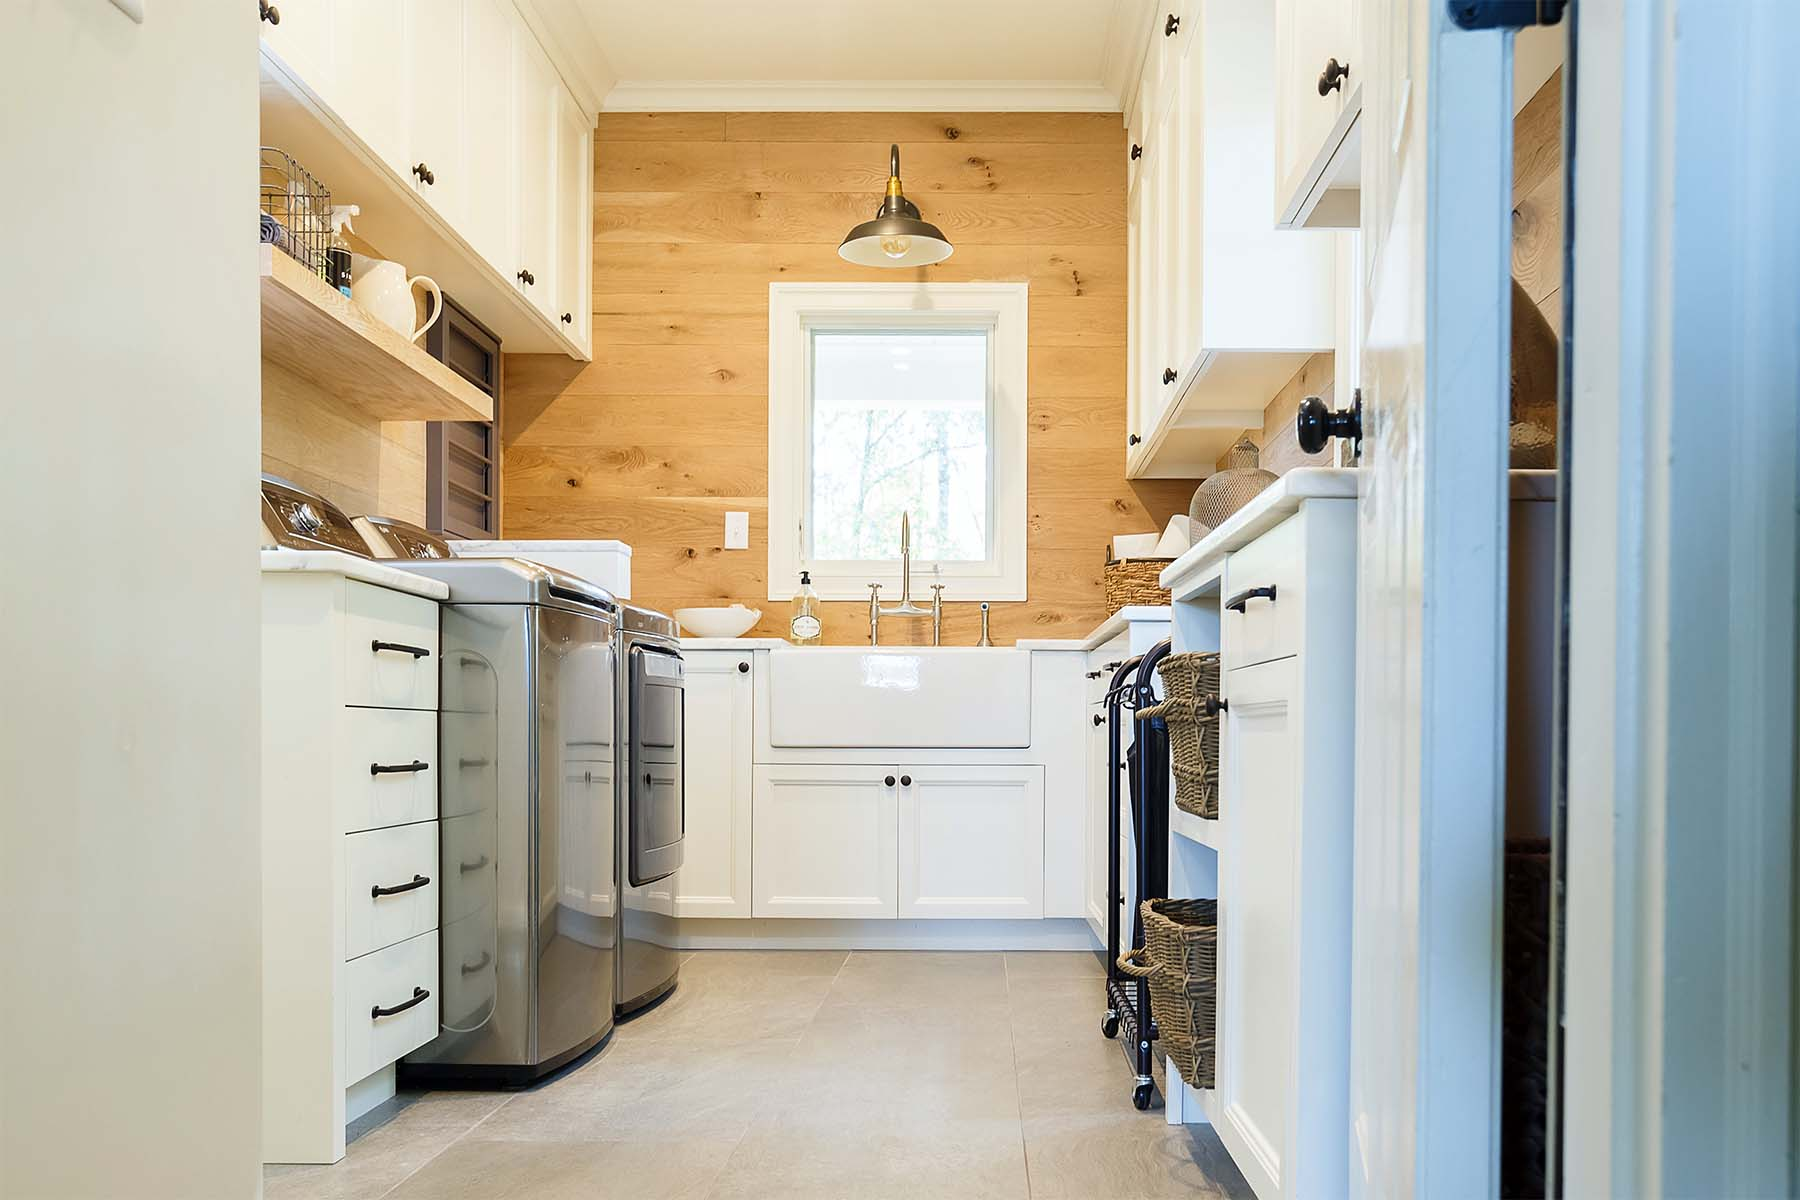 luxury laundry room white built ins with sink and countertop wood shiplap walls